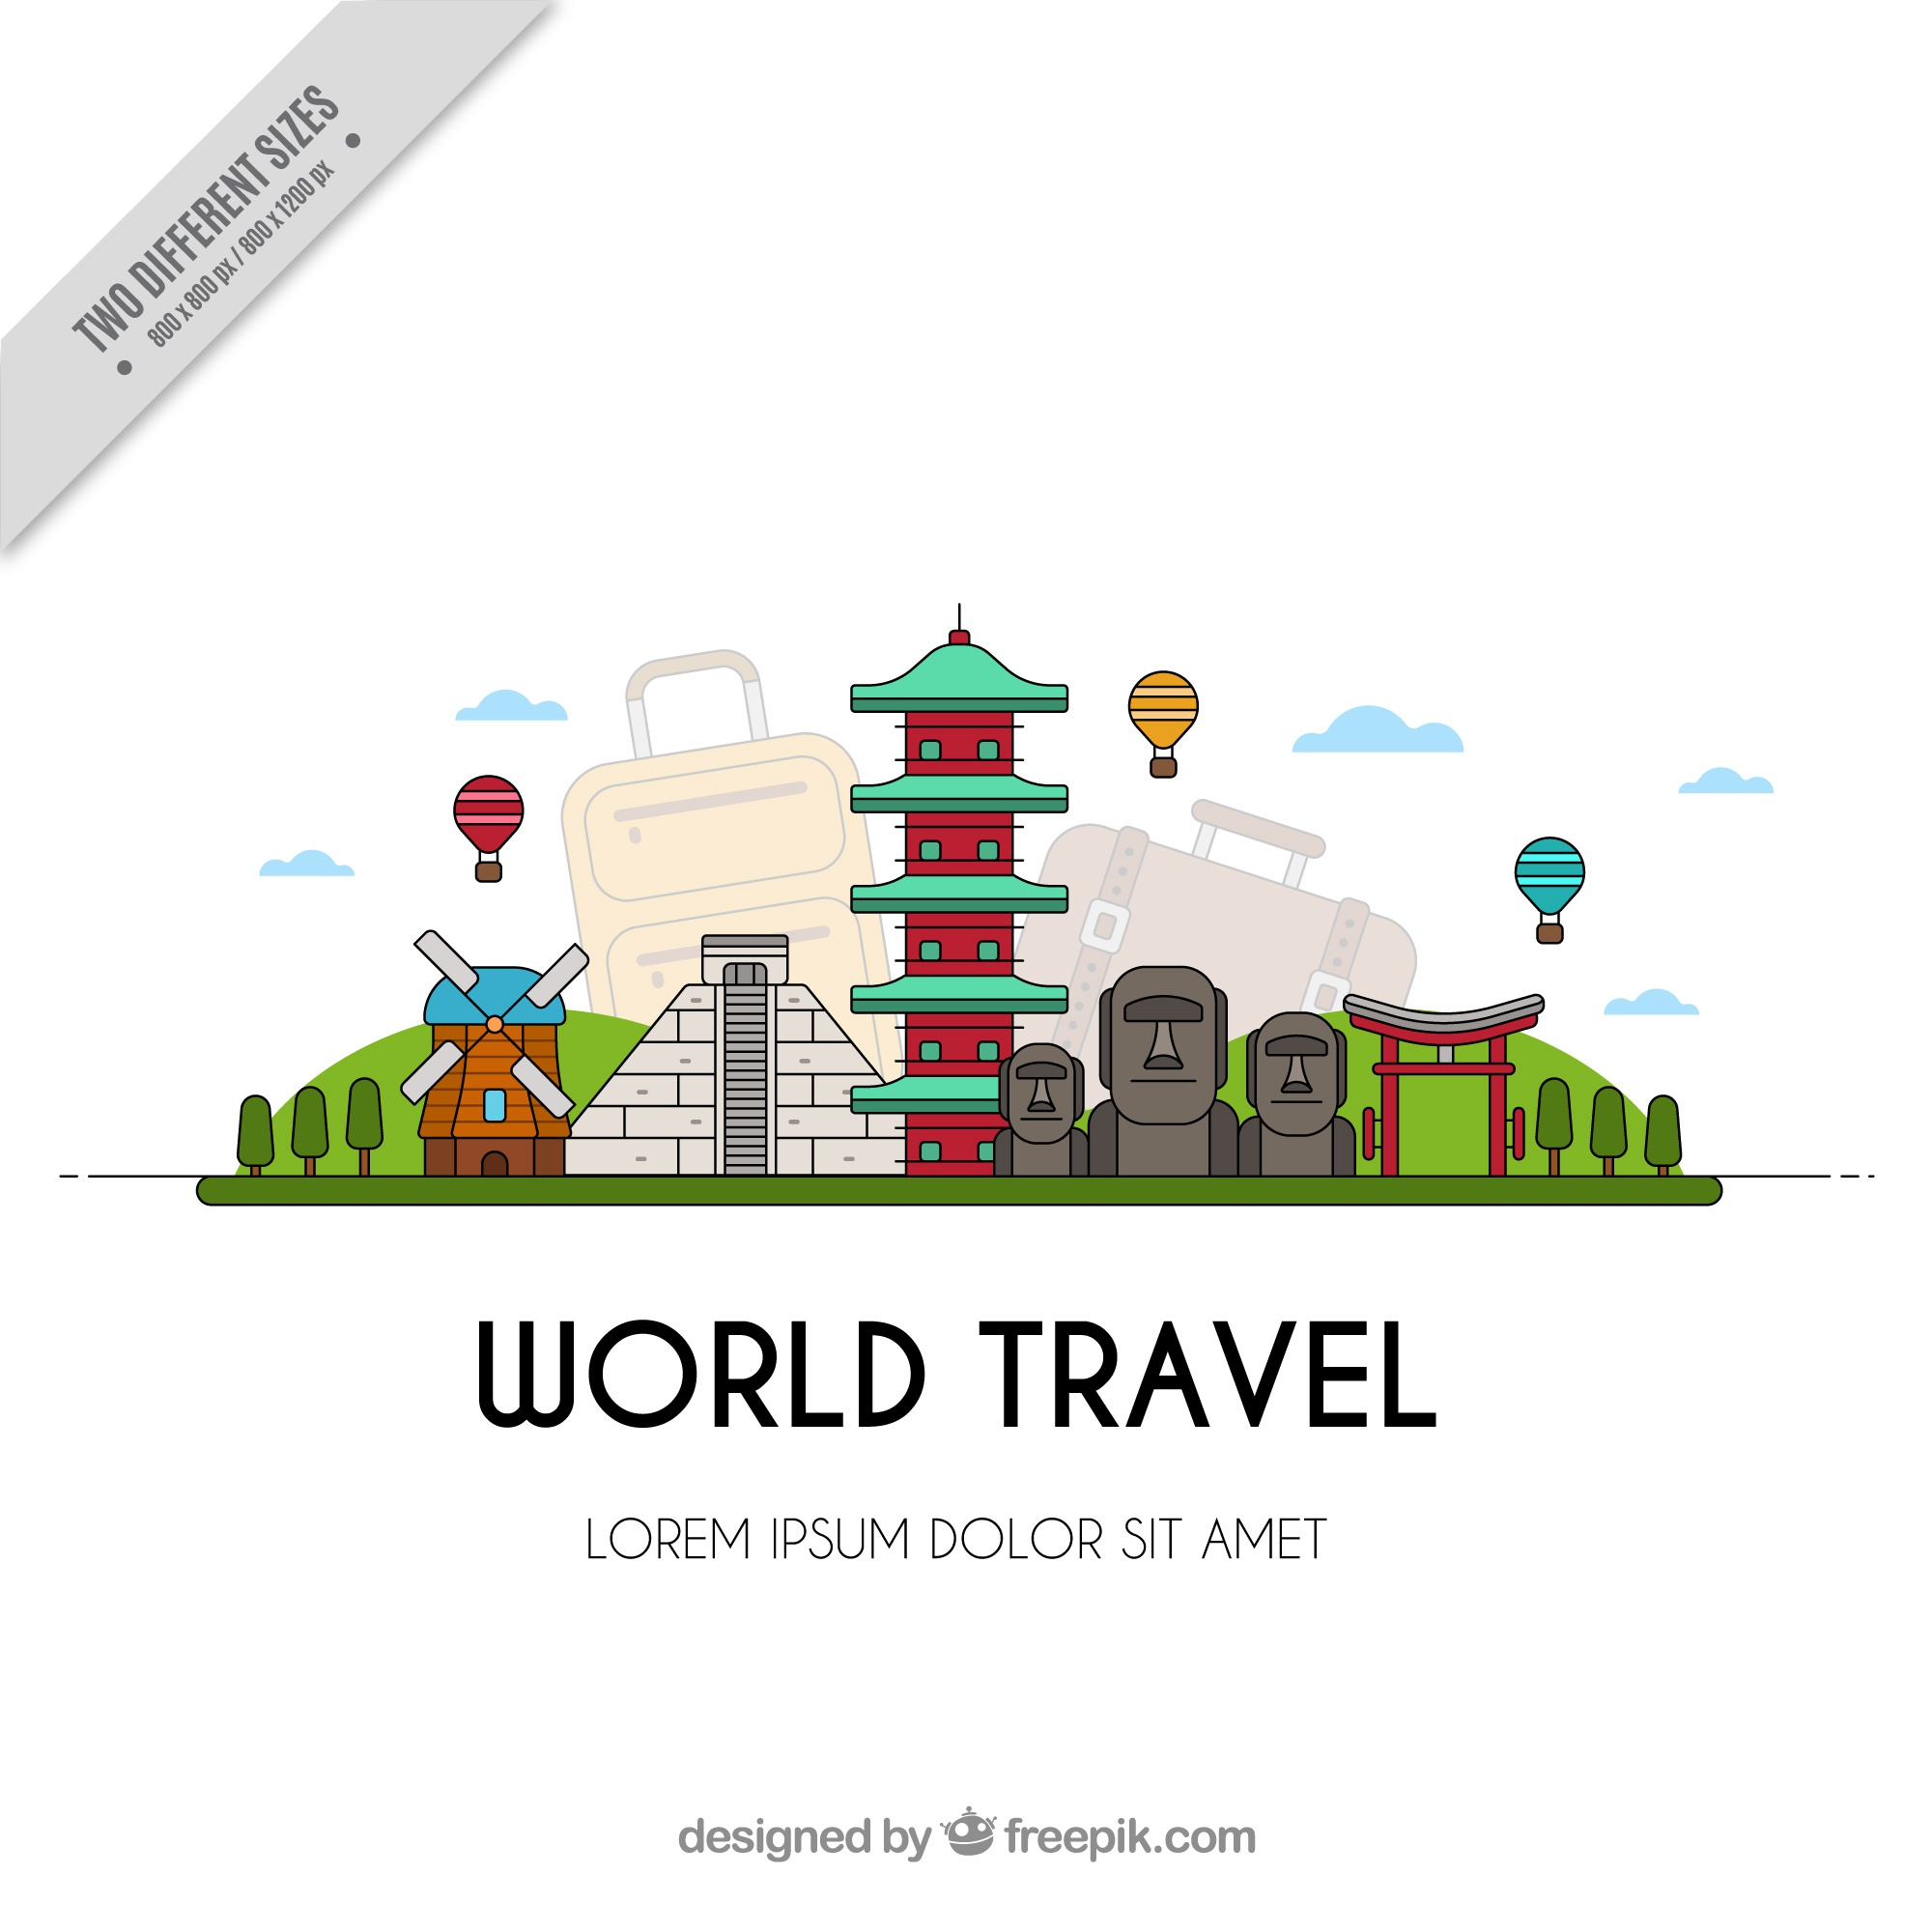 Travel background with world monuments